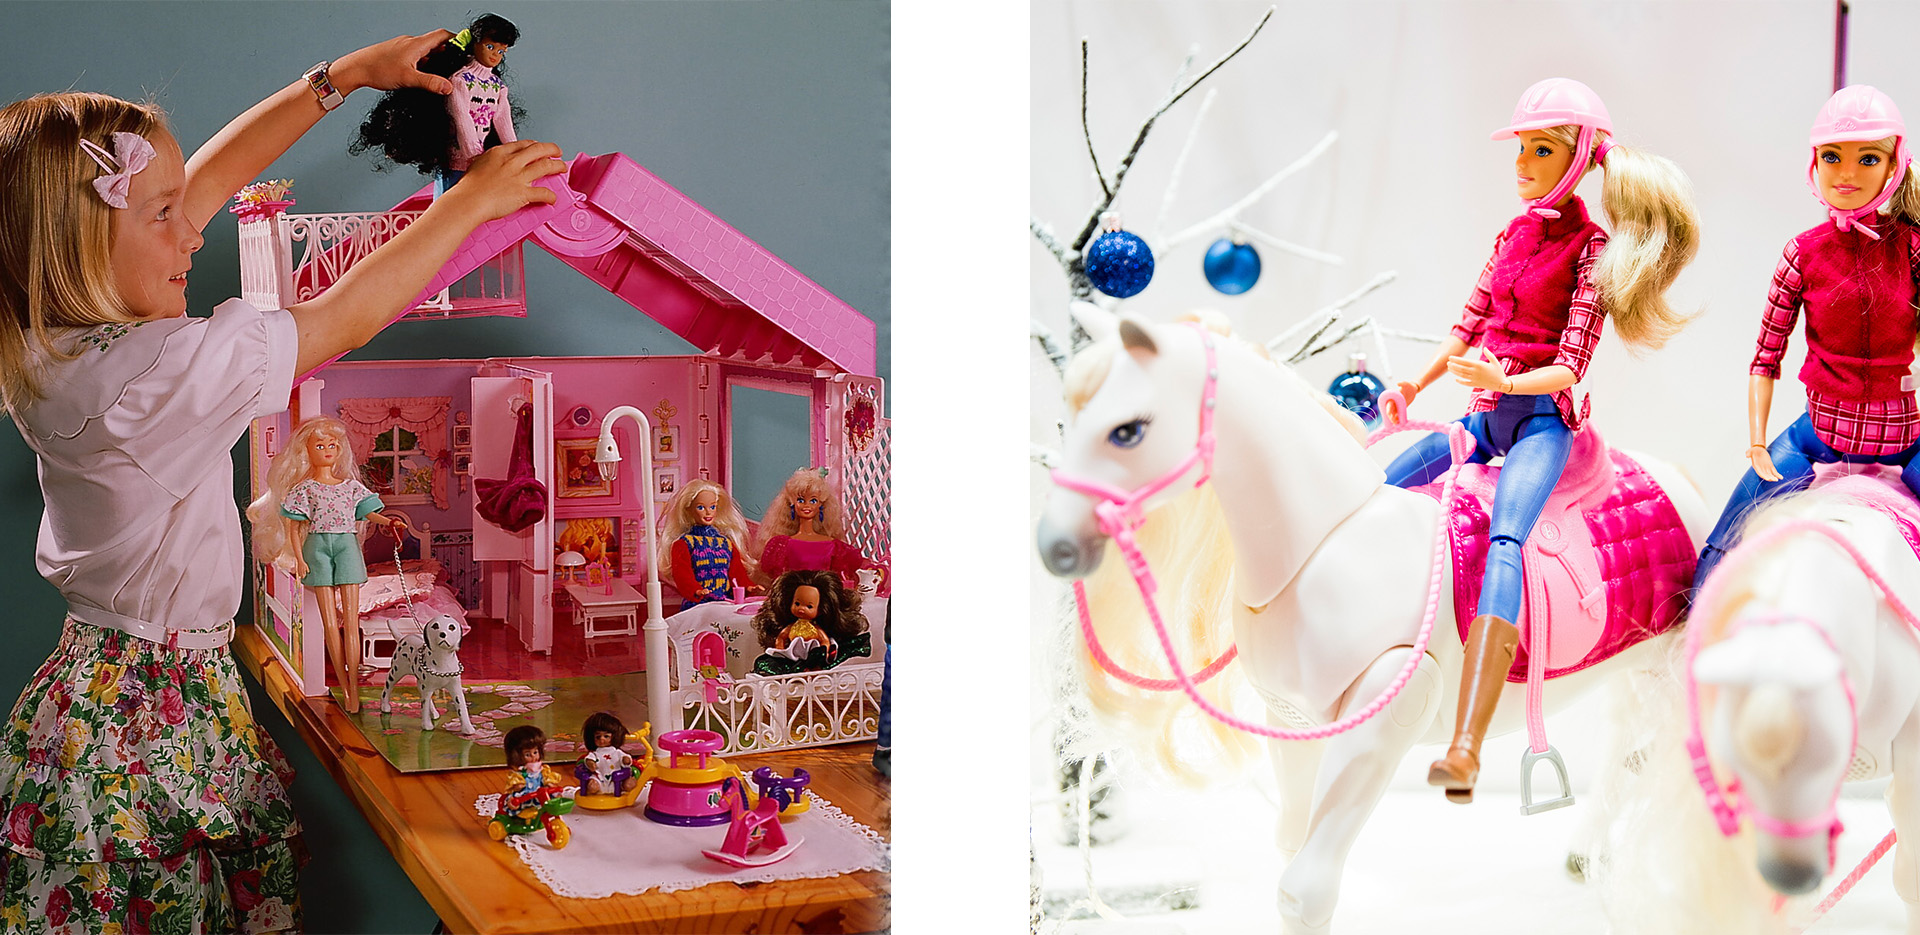 Barbie Dream House (Credit: Gierth/ullstein bild via Getty Images) and Barbie Dream Horse (Credit: Tristan Fewings/Getty Images)